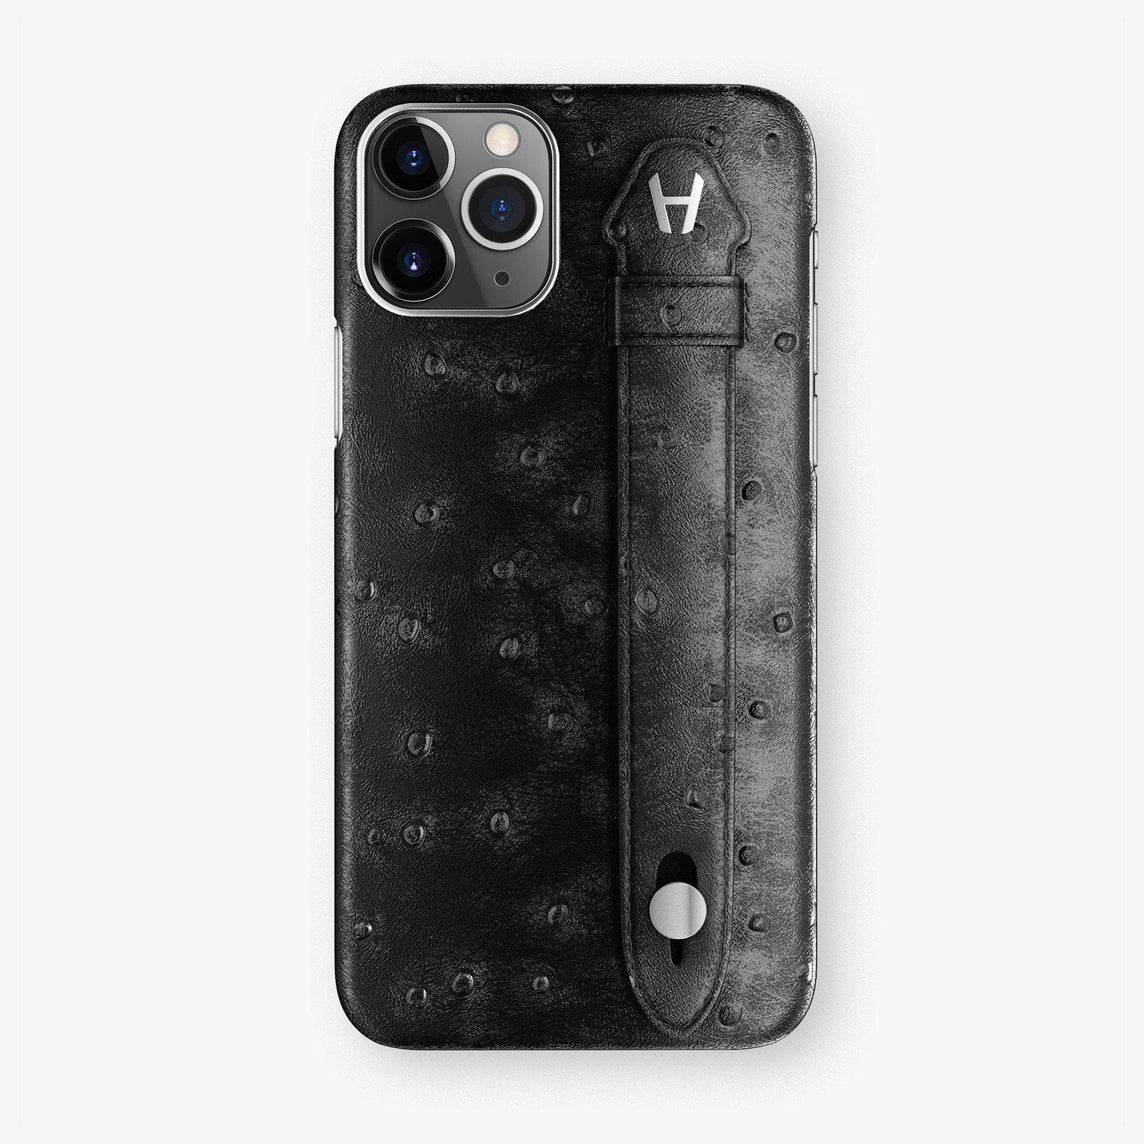 Ostrich Finger Case iPhone 11 Pro Max | Black - Stainless Steel